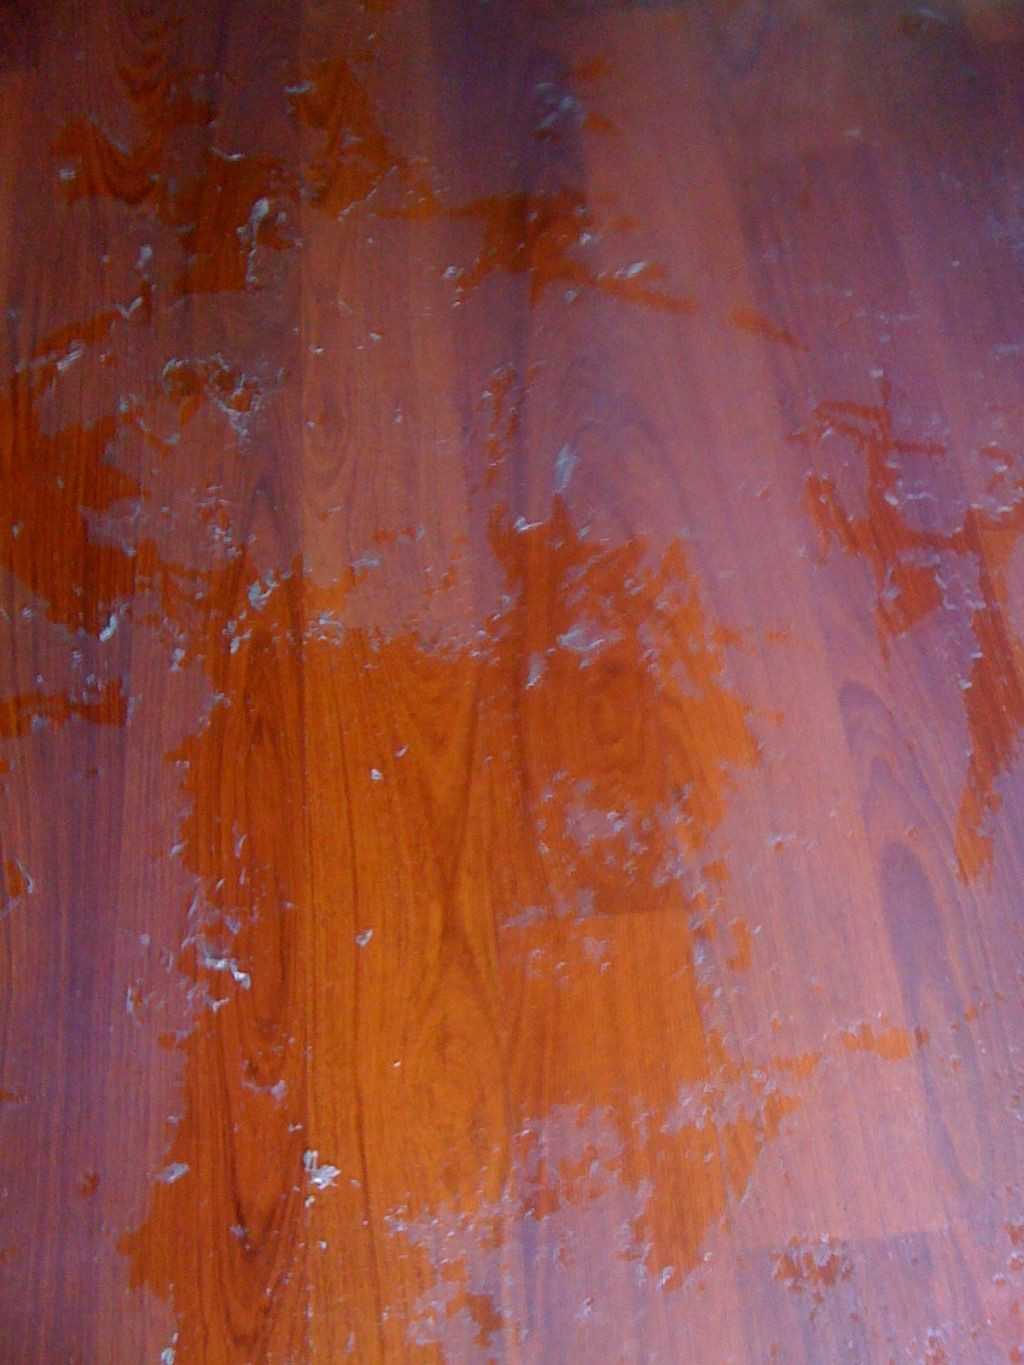 how to fix hardwood floor lifting of how to remove wax and oil soap cleaners from wood floors recipes intended for how to remove oily or wax build up from cleaning or polishing solutions from wood floors